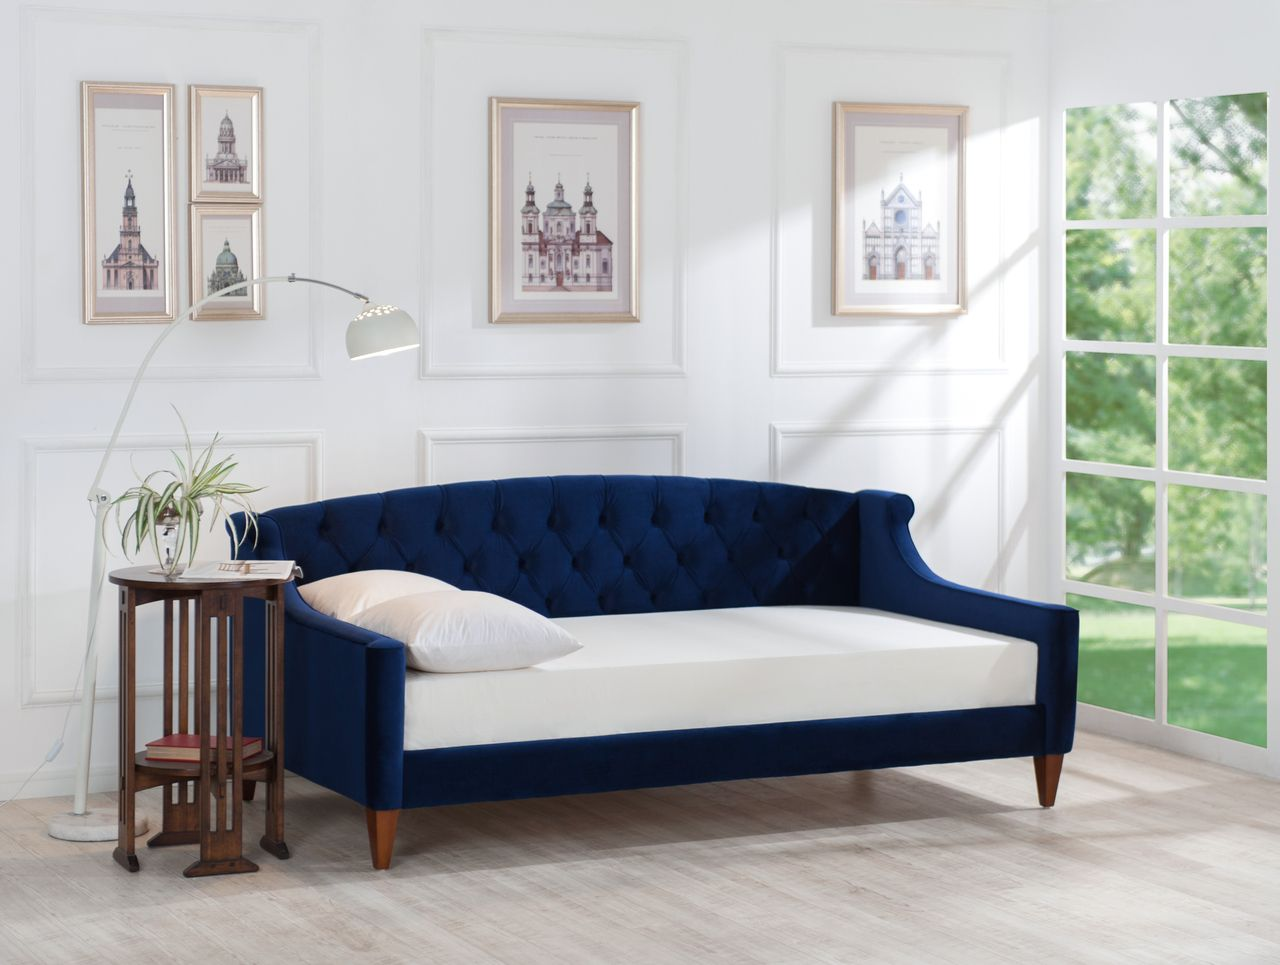 Lucy Upholstered Sofa Bed Navy Blue Upholstered Sofa Bed Upholstered Sofa Sofa